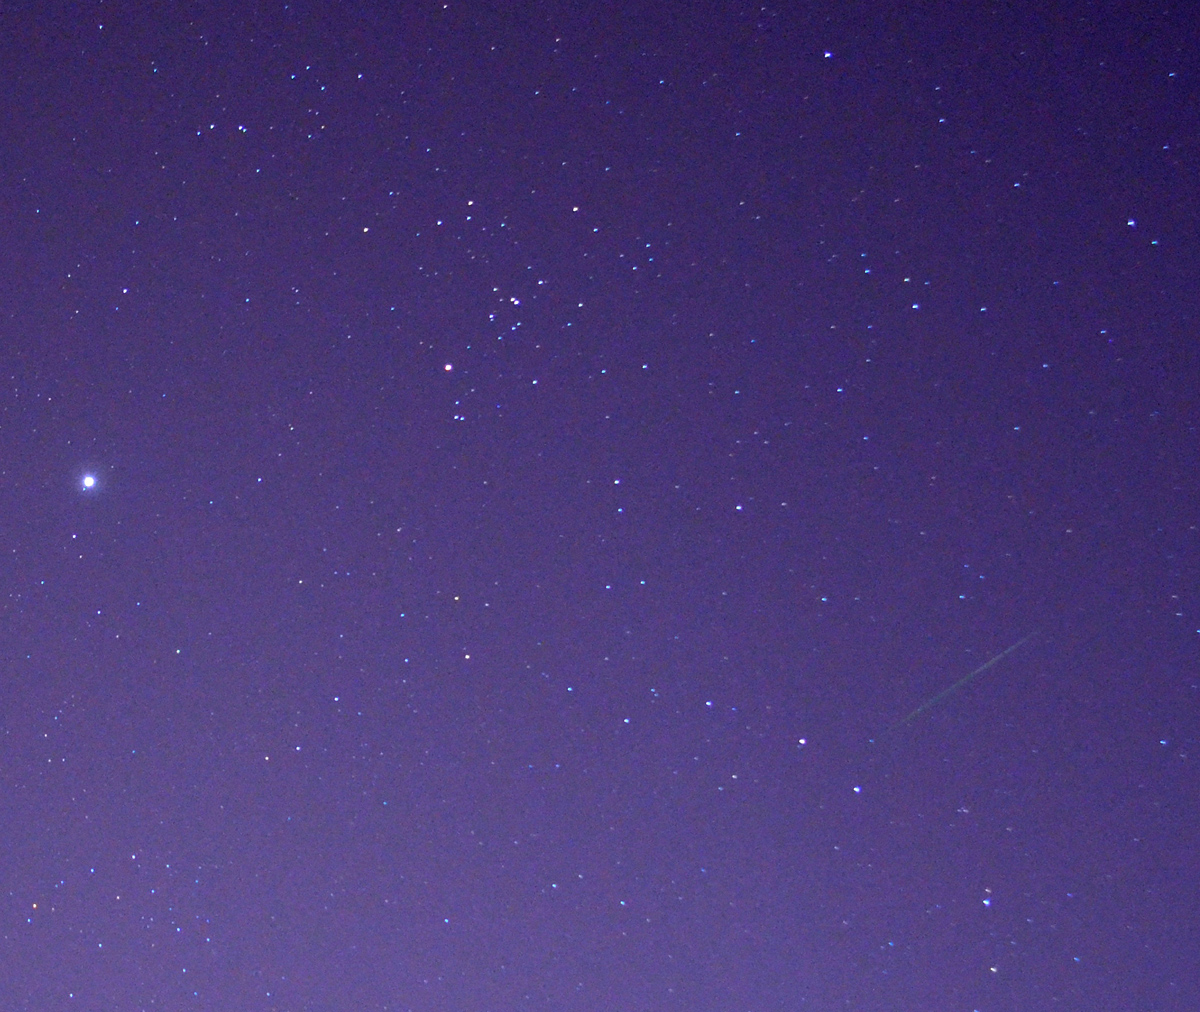 2012 Orionid Over Las Vegas, NV